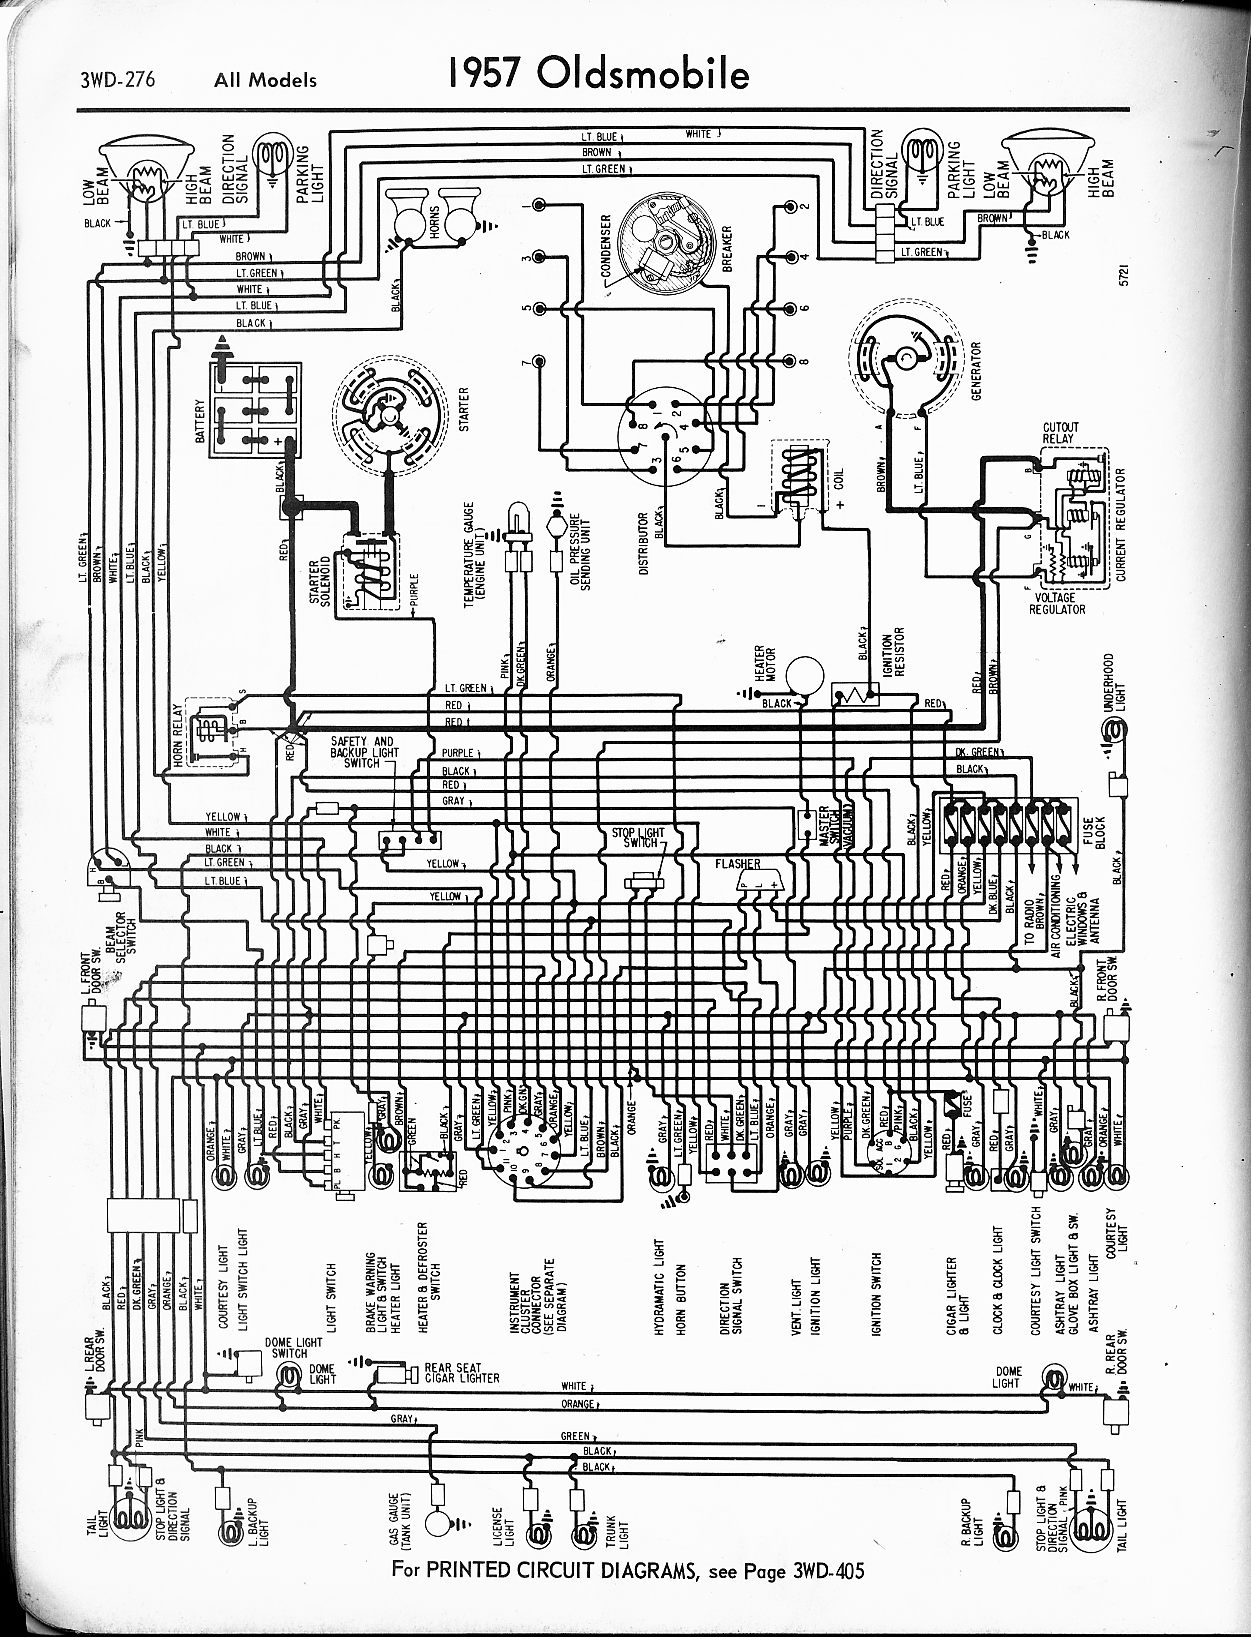 MWire5765 276 oldsmobile wiring diagrams the old car manual project regency ceiling fan wiring diagram at bakdesigns.co